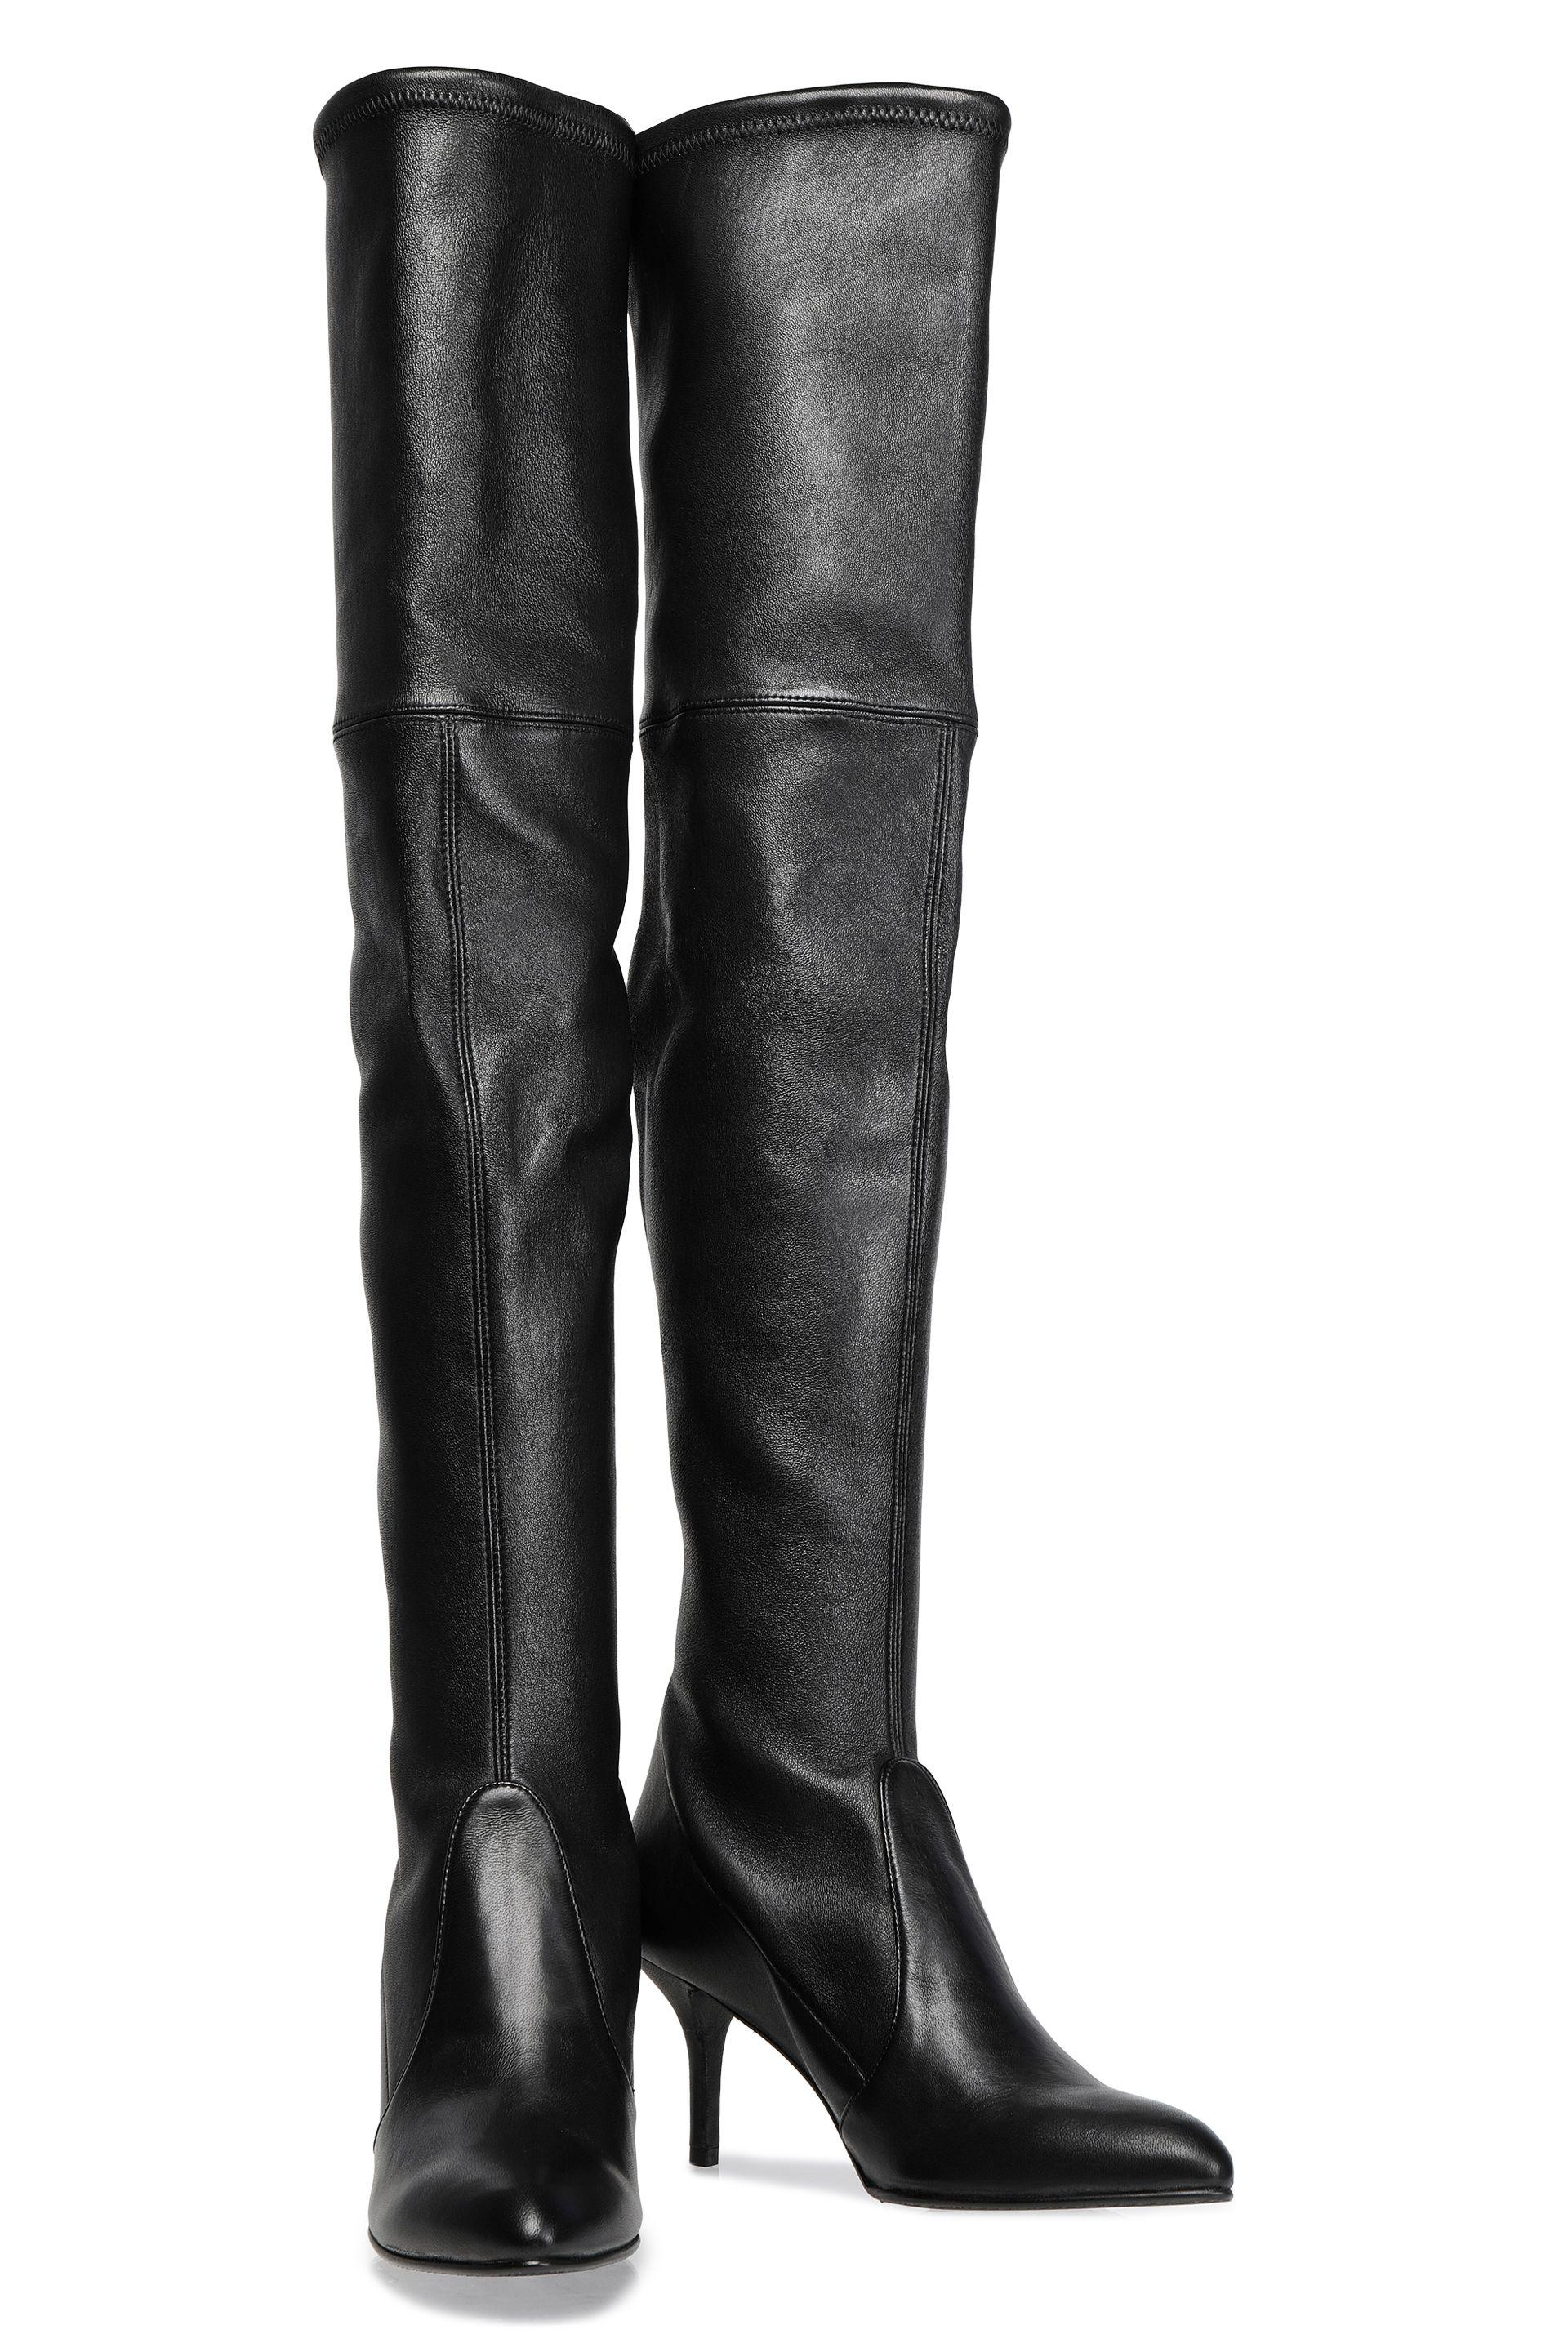 b57c807afd8 Stuart Weitzman - Woman Stretch-leather Over-the-knee Boots Black - Lyst.  View fullscreen